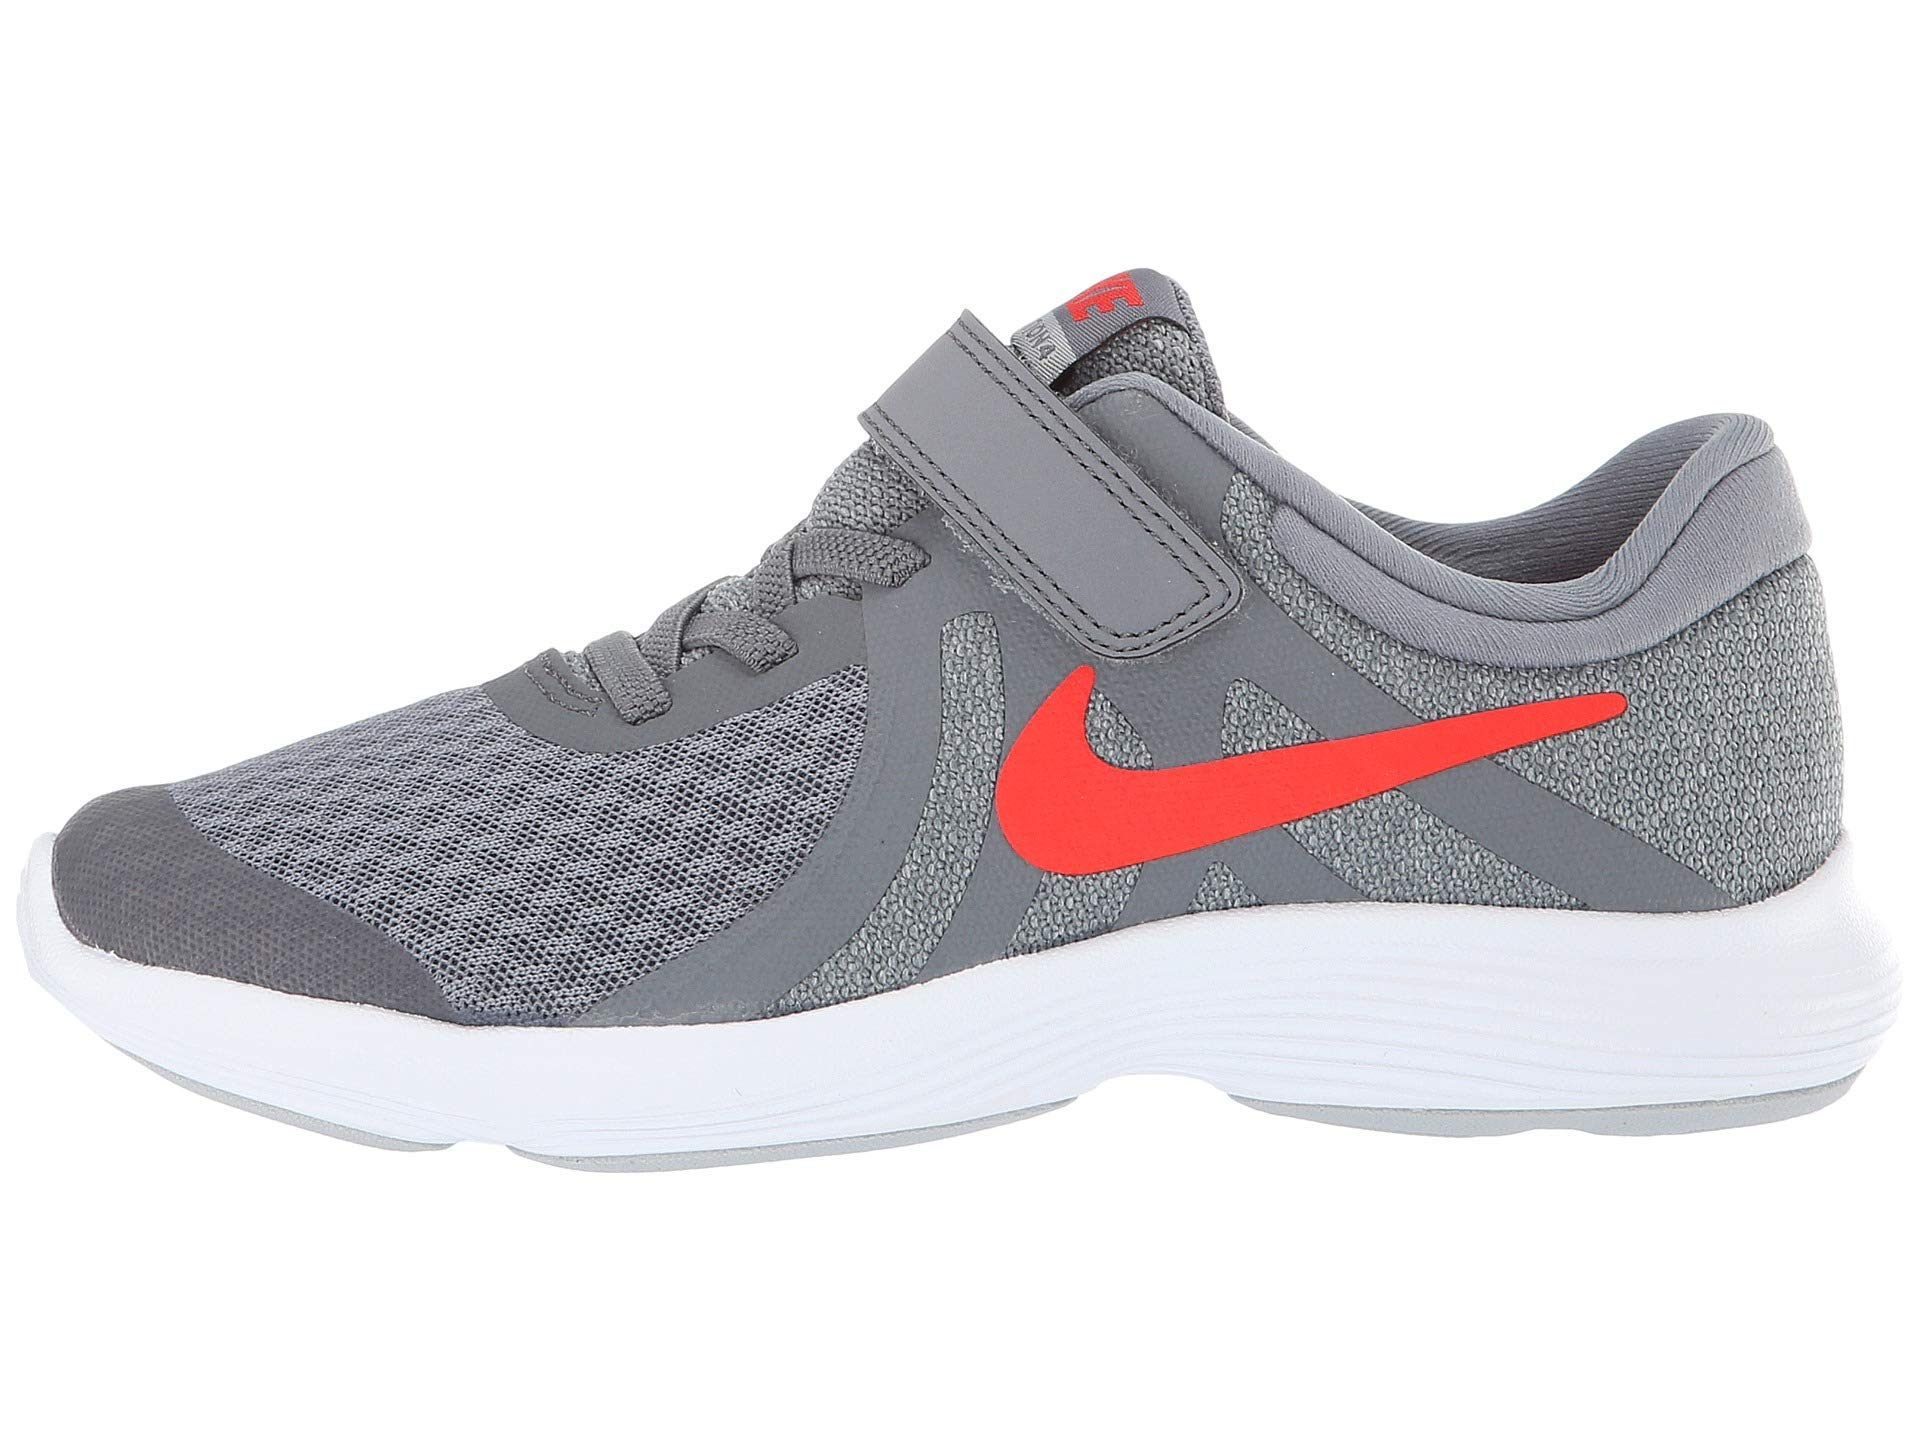 Nike Boy's Revolution 4 (PSV) Running Shoes (12.5 M Little Kid US, Cool Grey/Habanero red/Wolf Grey/White)